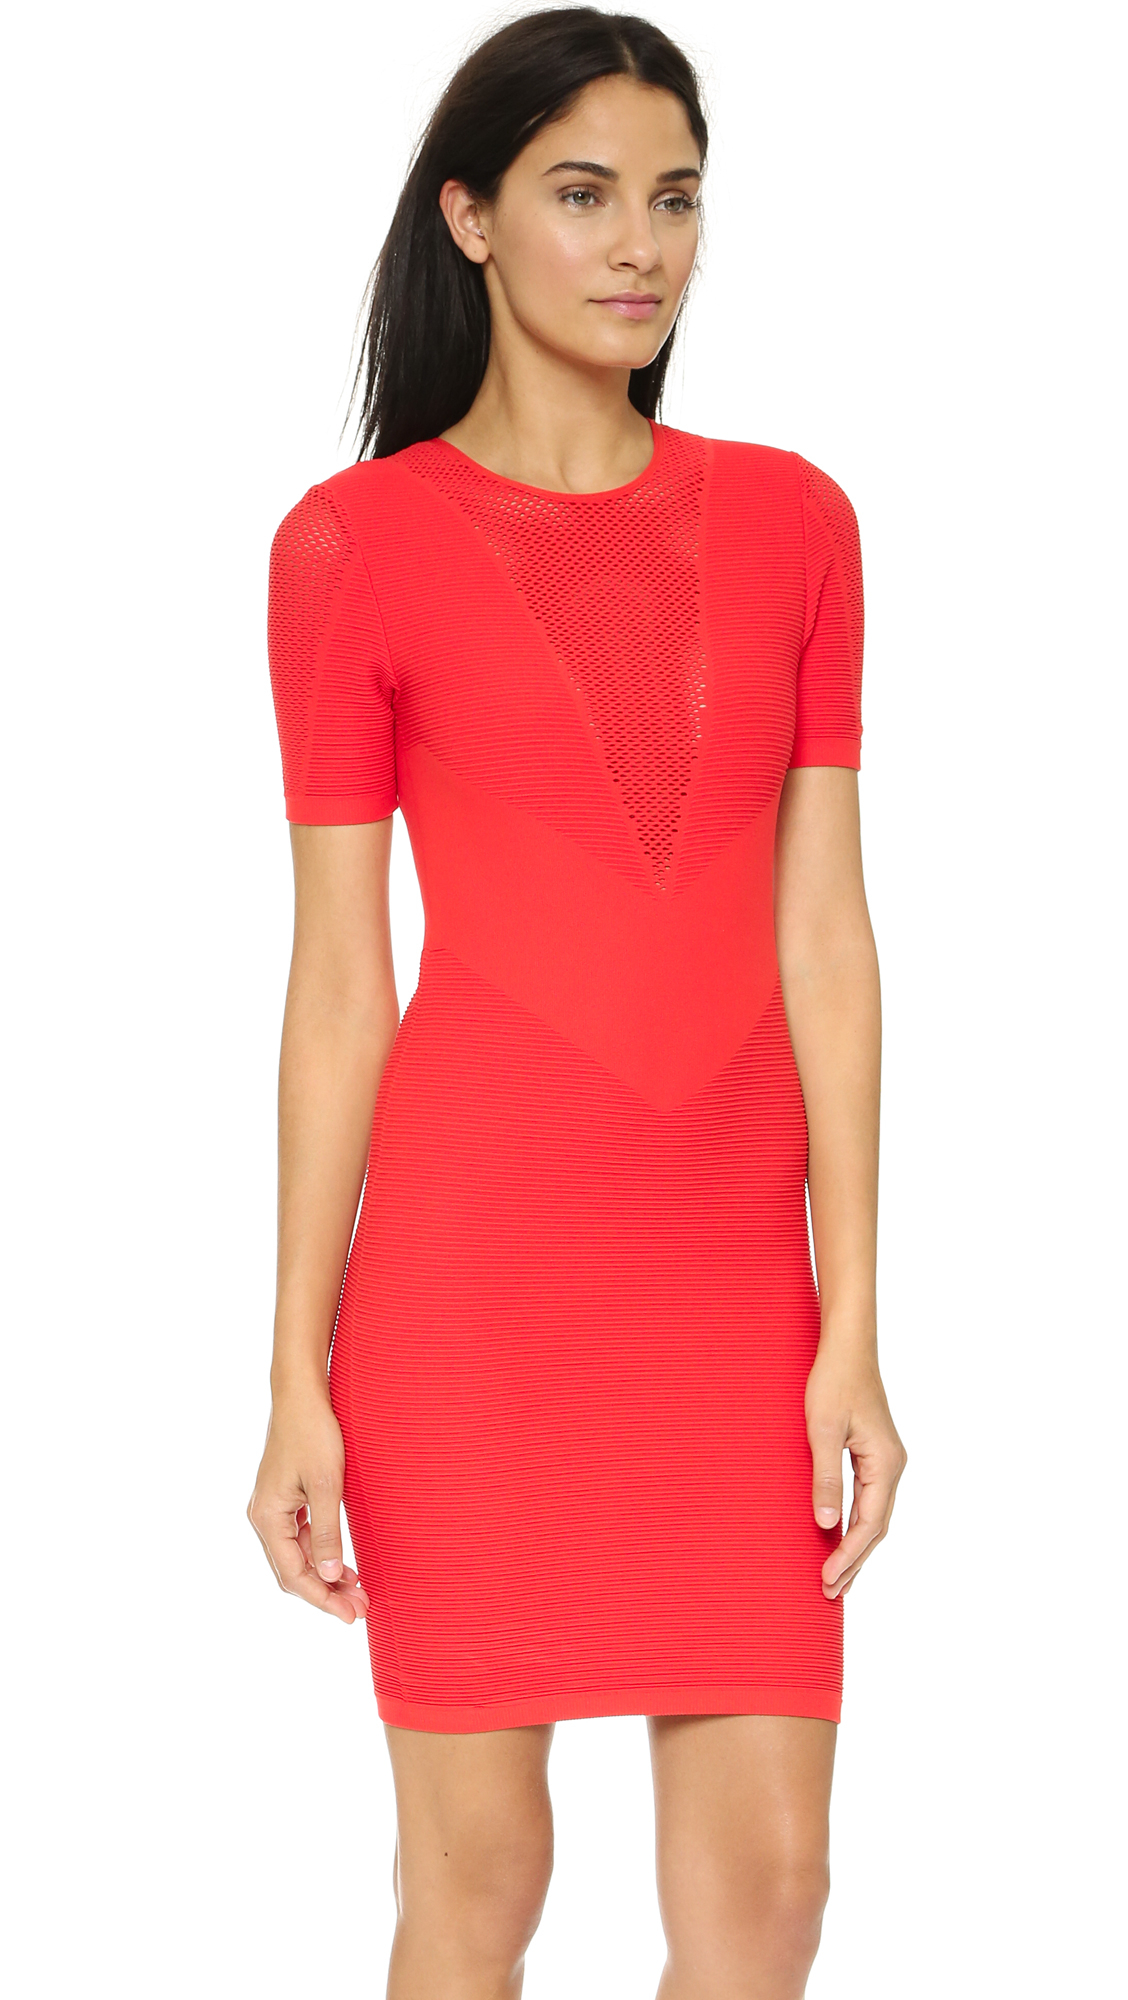 Theory Spike Atlas Dress - Red Coral in Red | Lyst